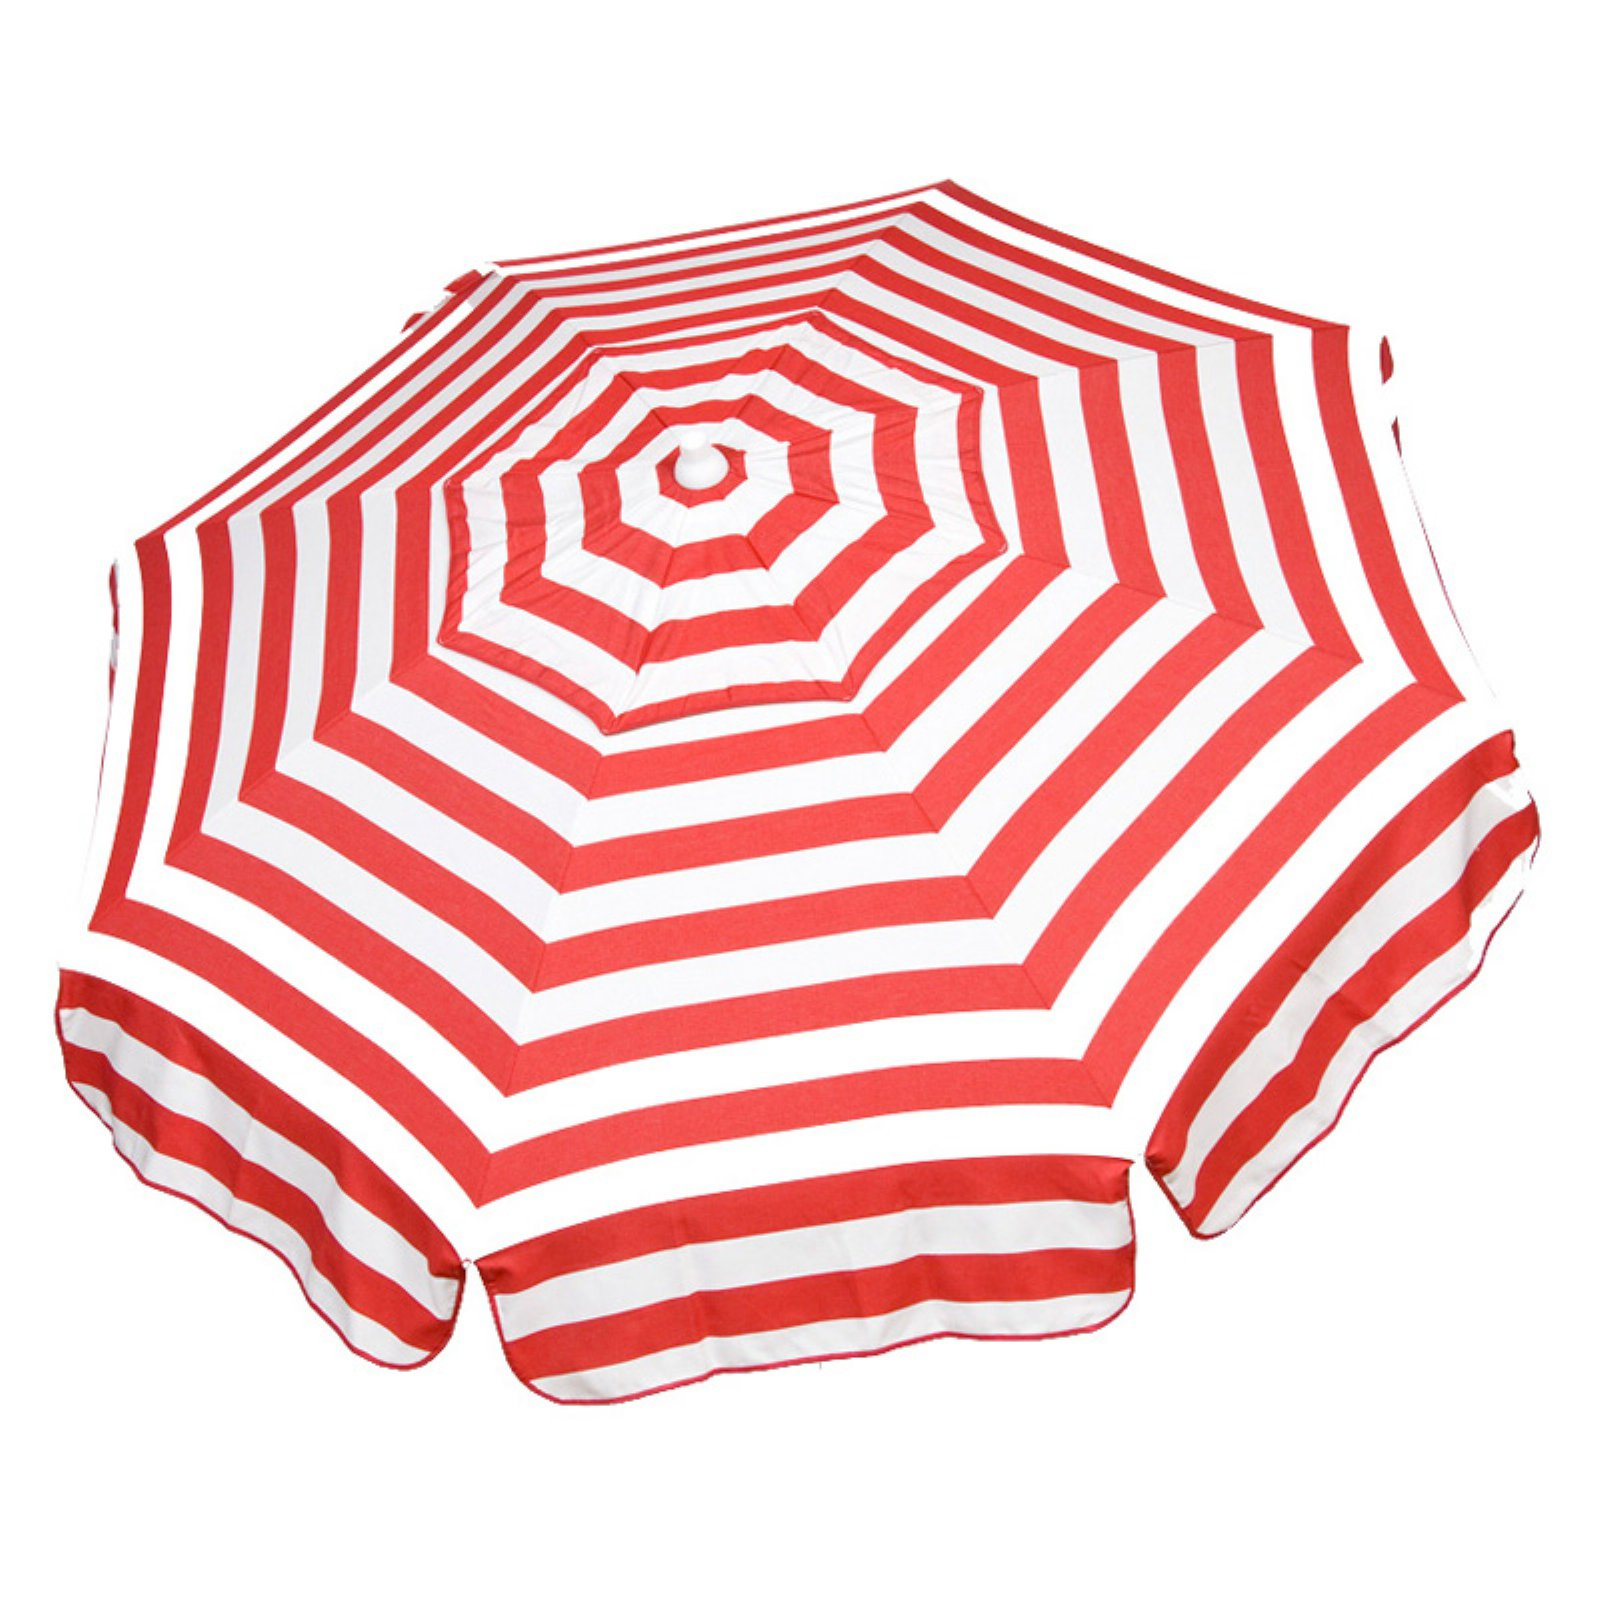 DestinationGear Italian 6' Umbrella Acrylic Stripes Red and White Patio Pole